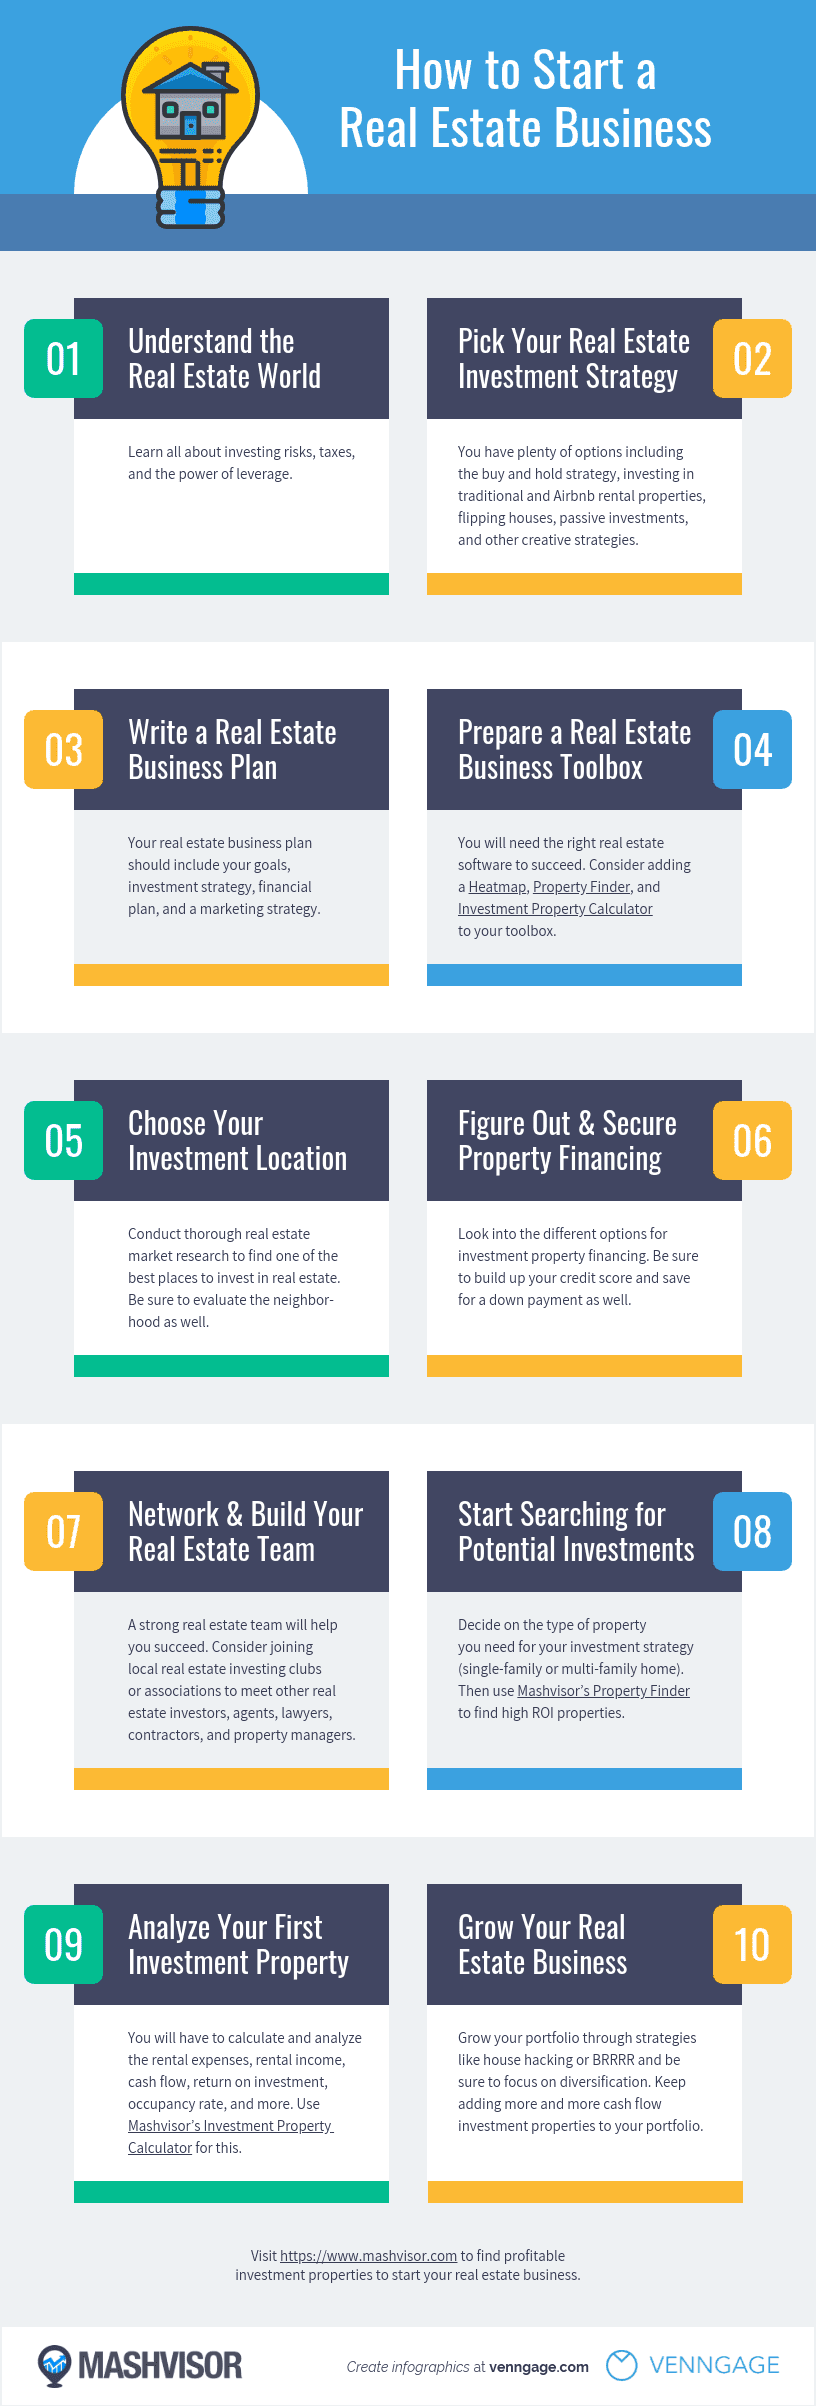 How to Start a Real Estate Business #infographic